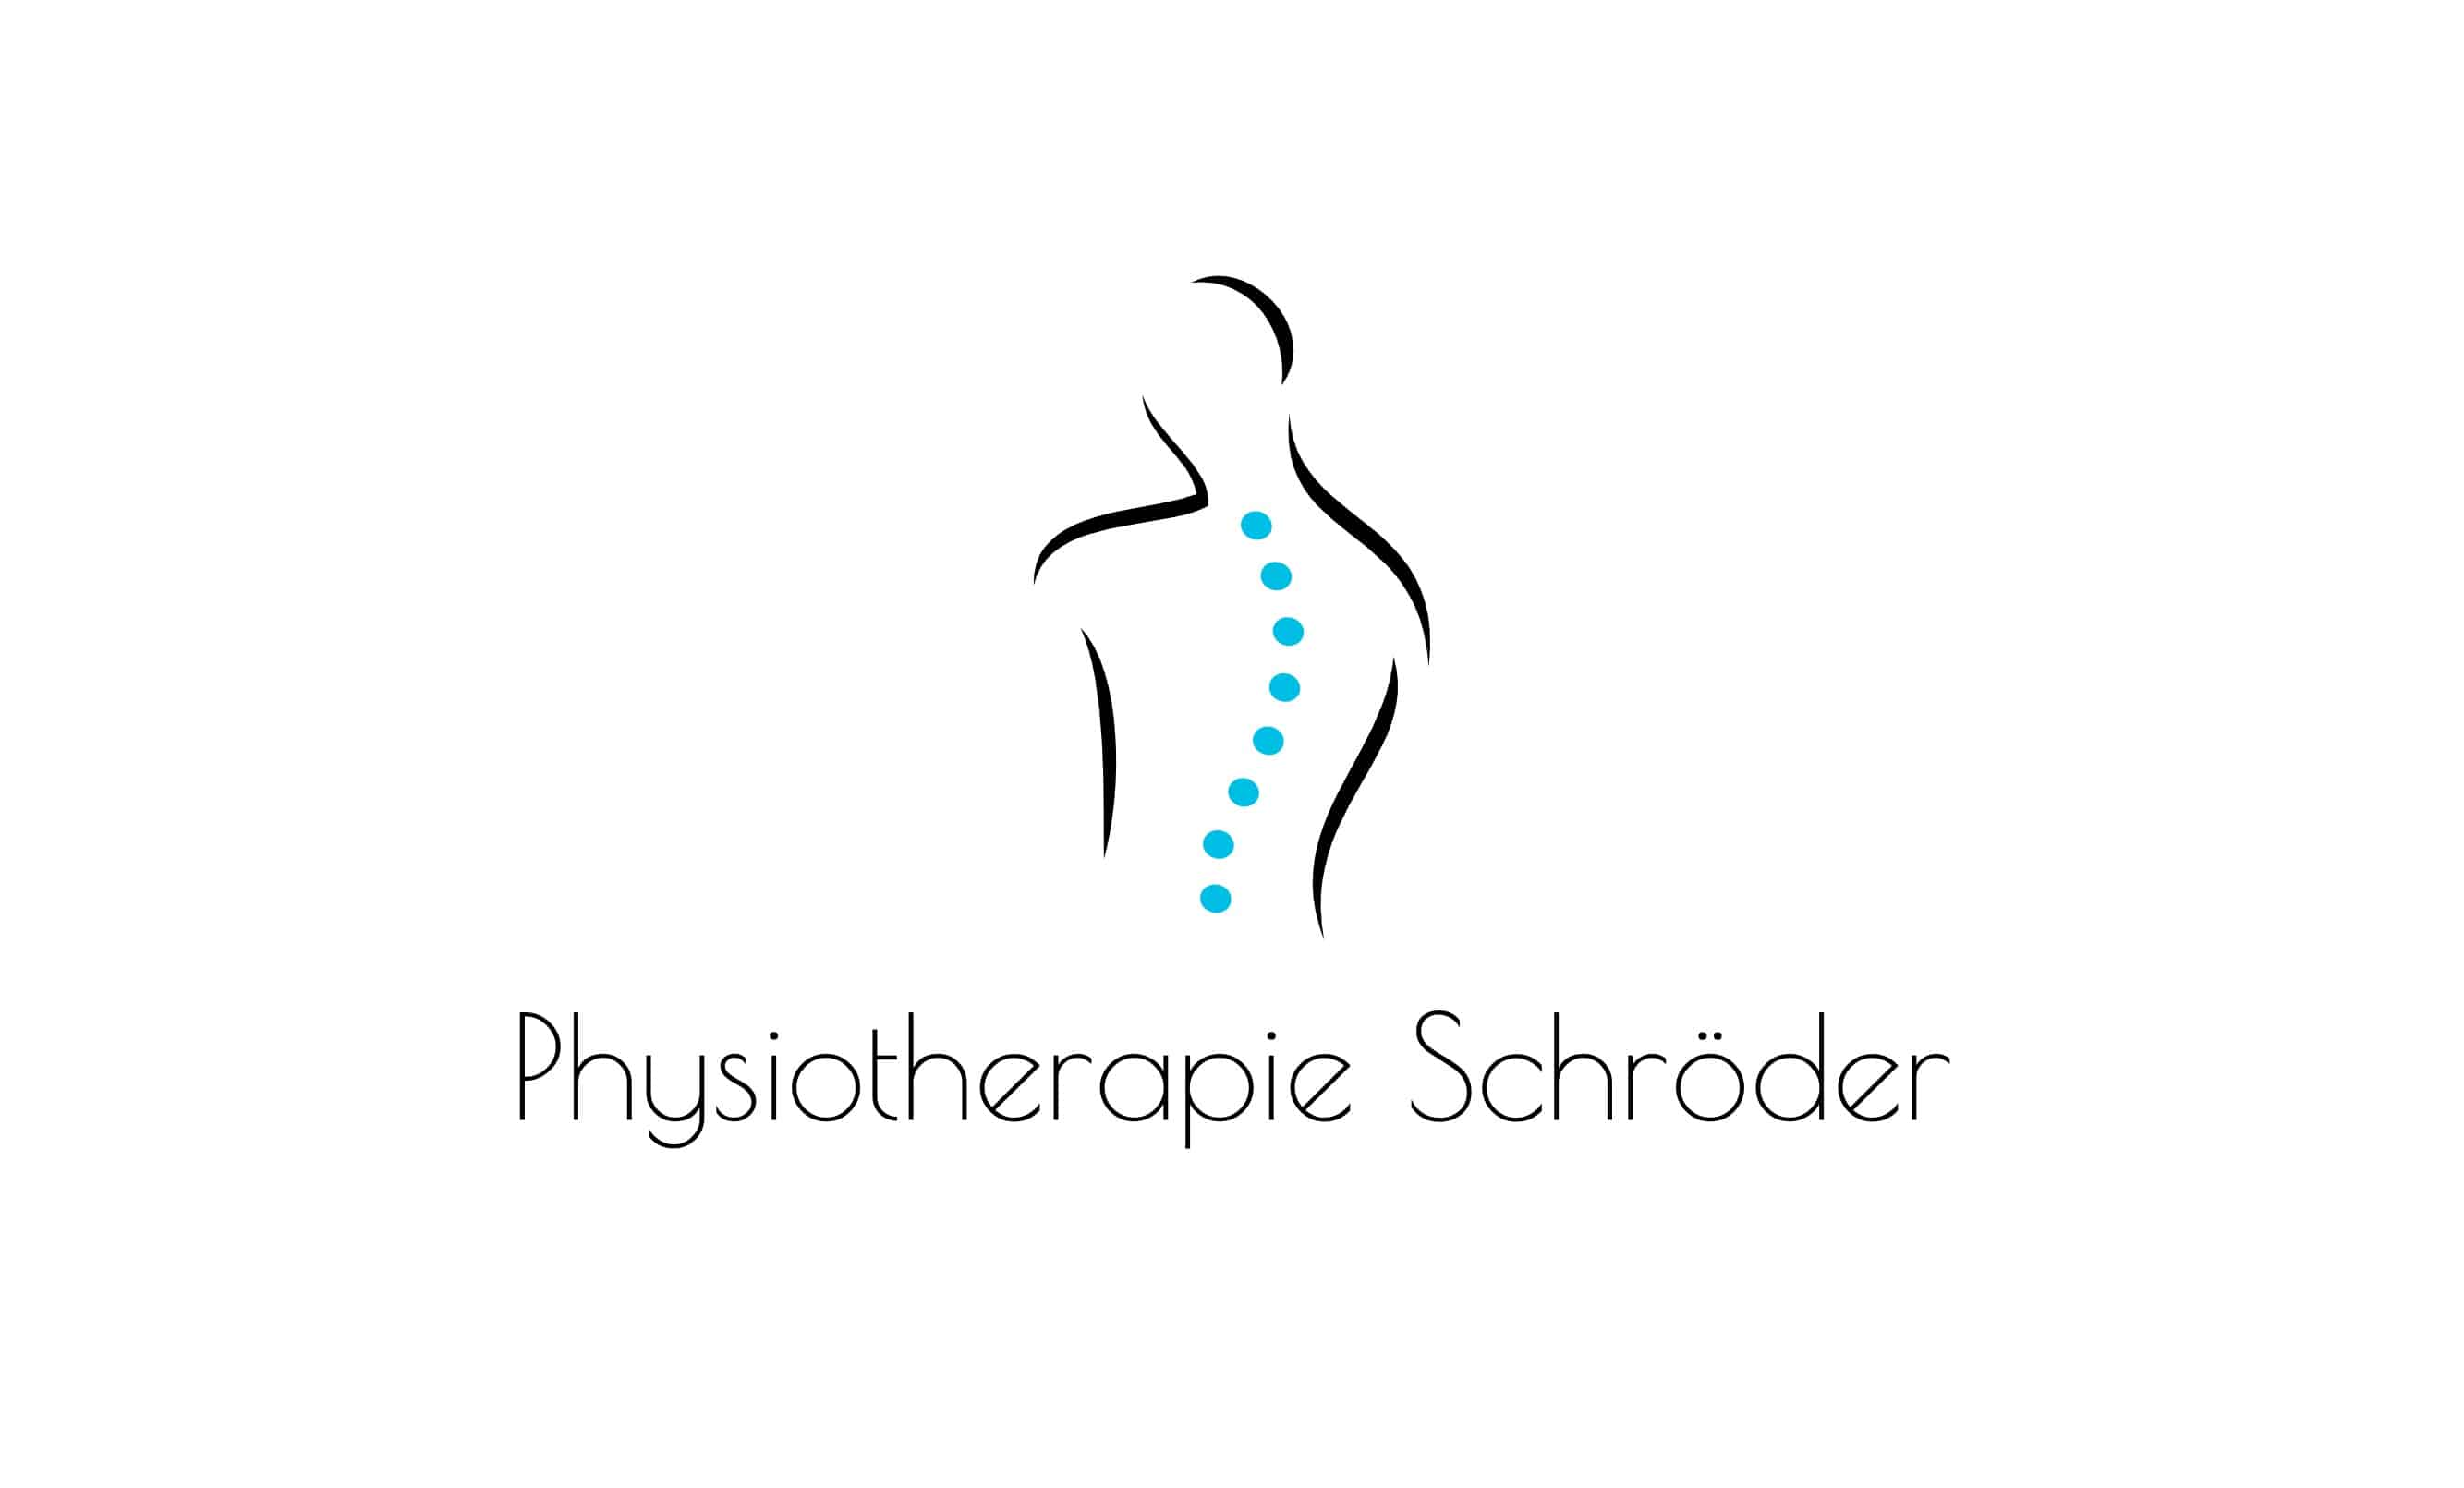 physiotherapeut in ab 16 in berlin gesucht stellenangebot physiotherapie. Black Bedroom Furniture Sets. Home Design Ideas